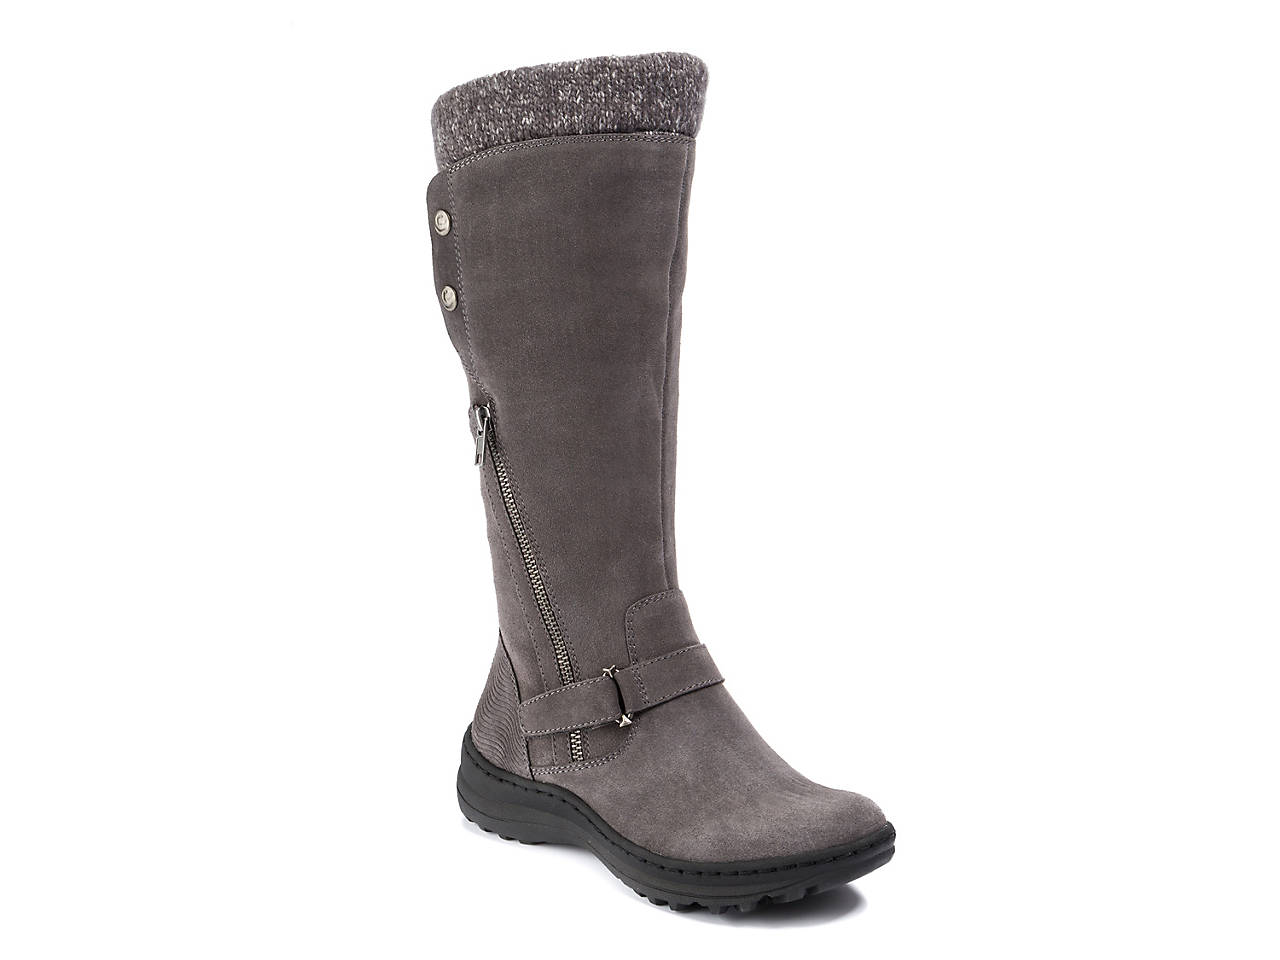 Bare Traps Adele Boot Women s Shoes  9a201a402